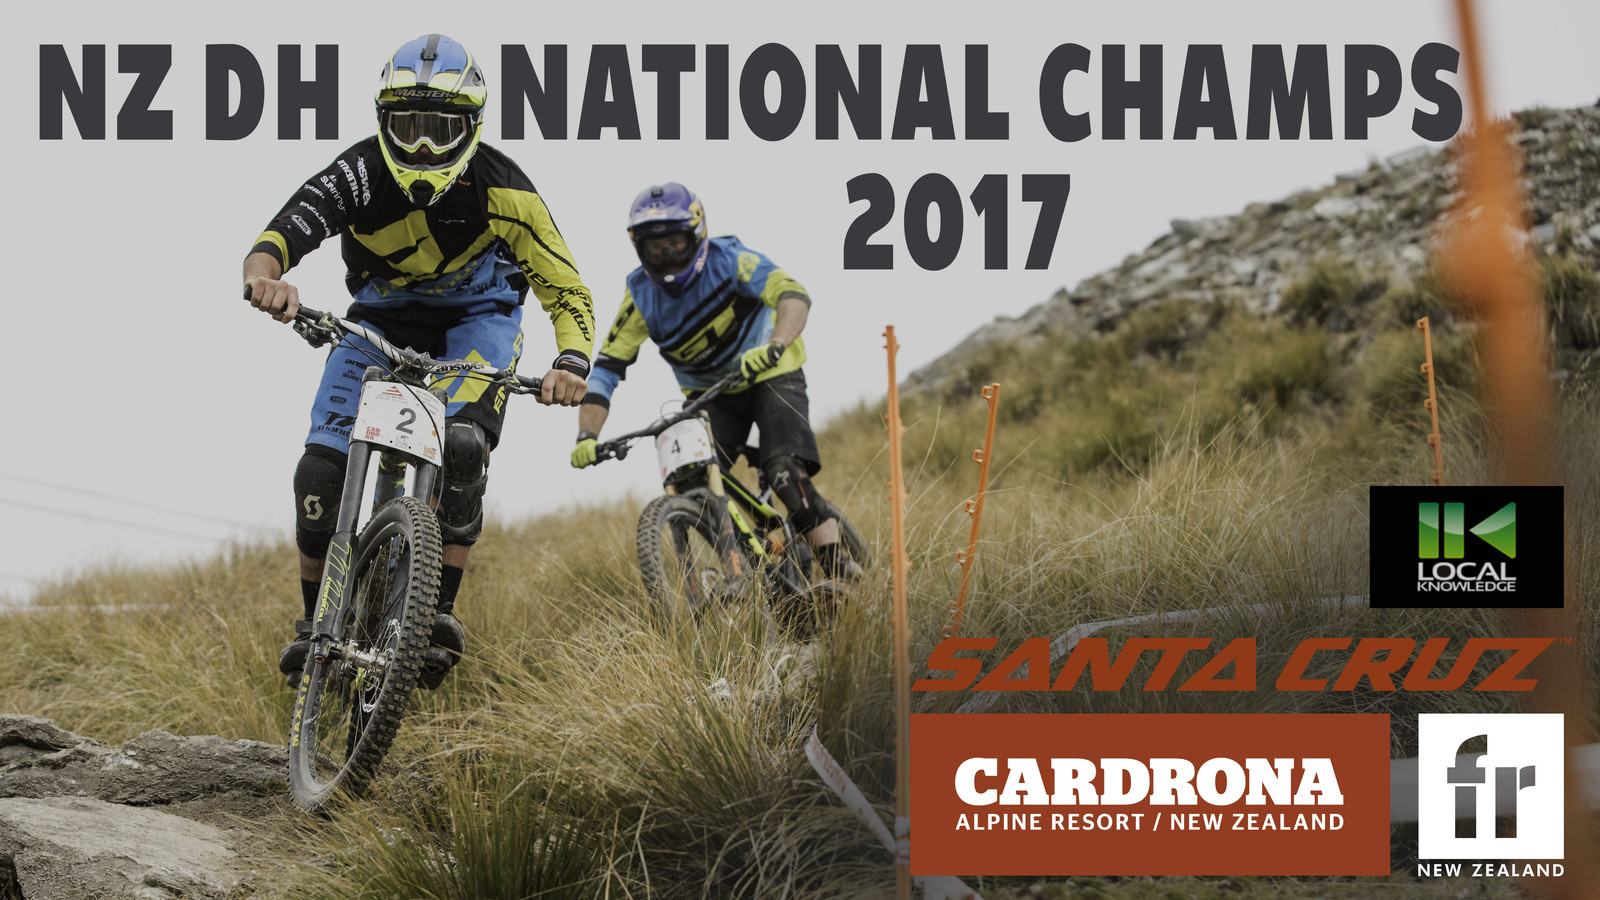 NZ DH National Champs 2017 - Cardrona